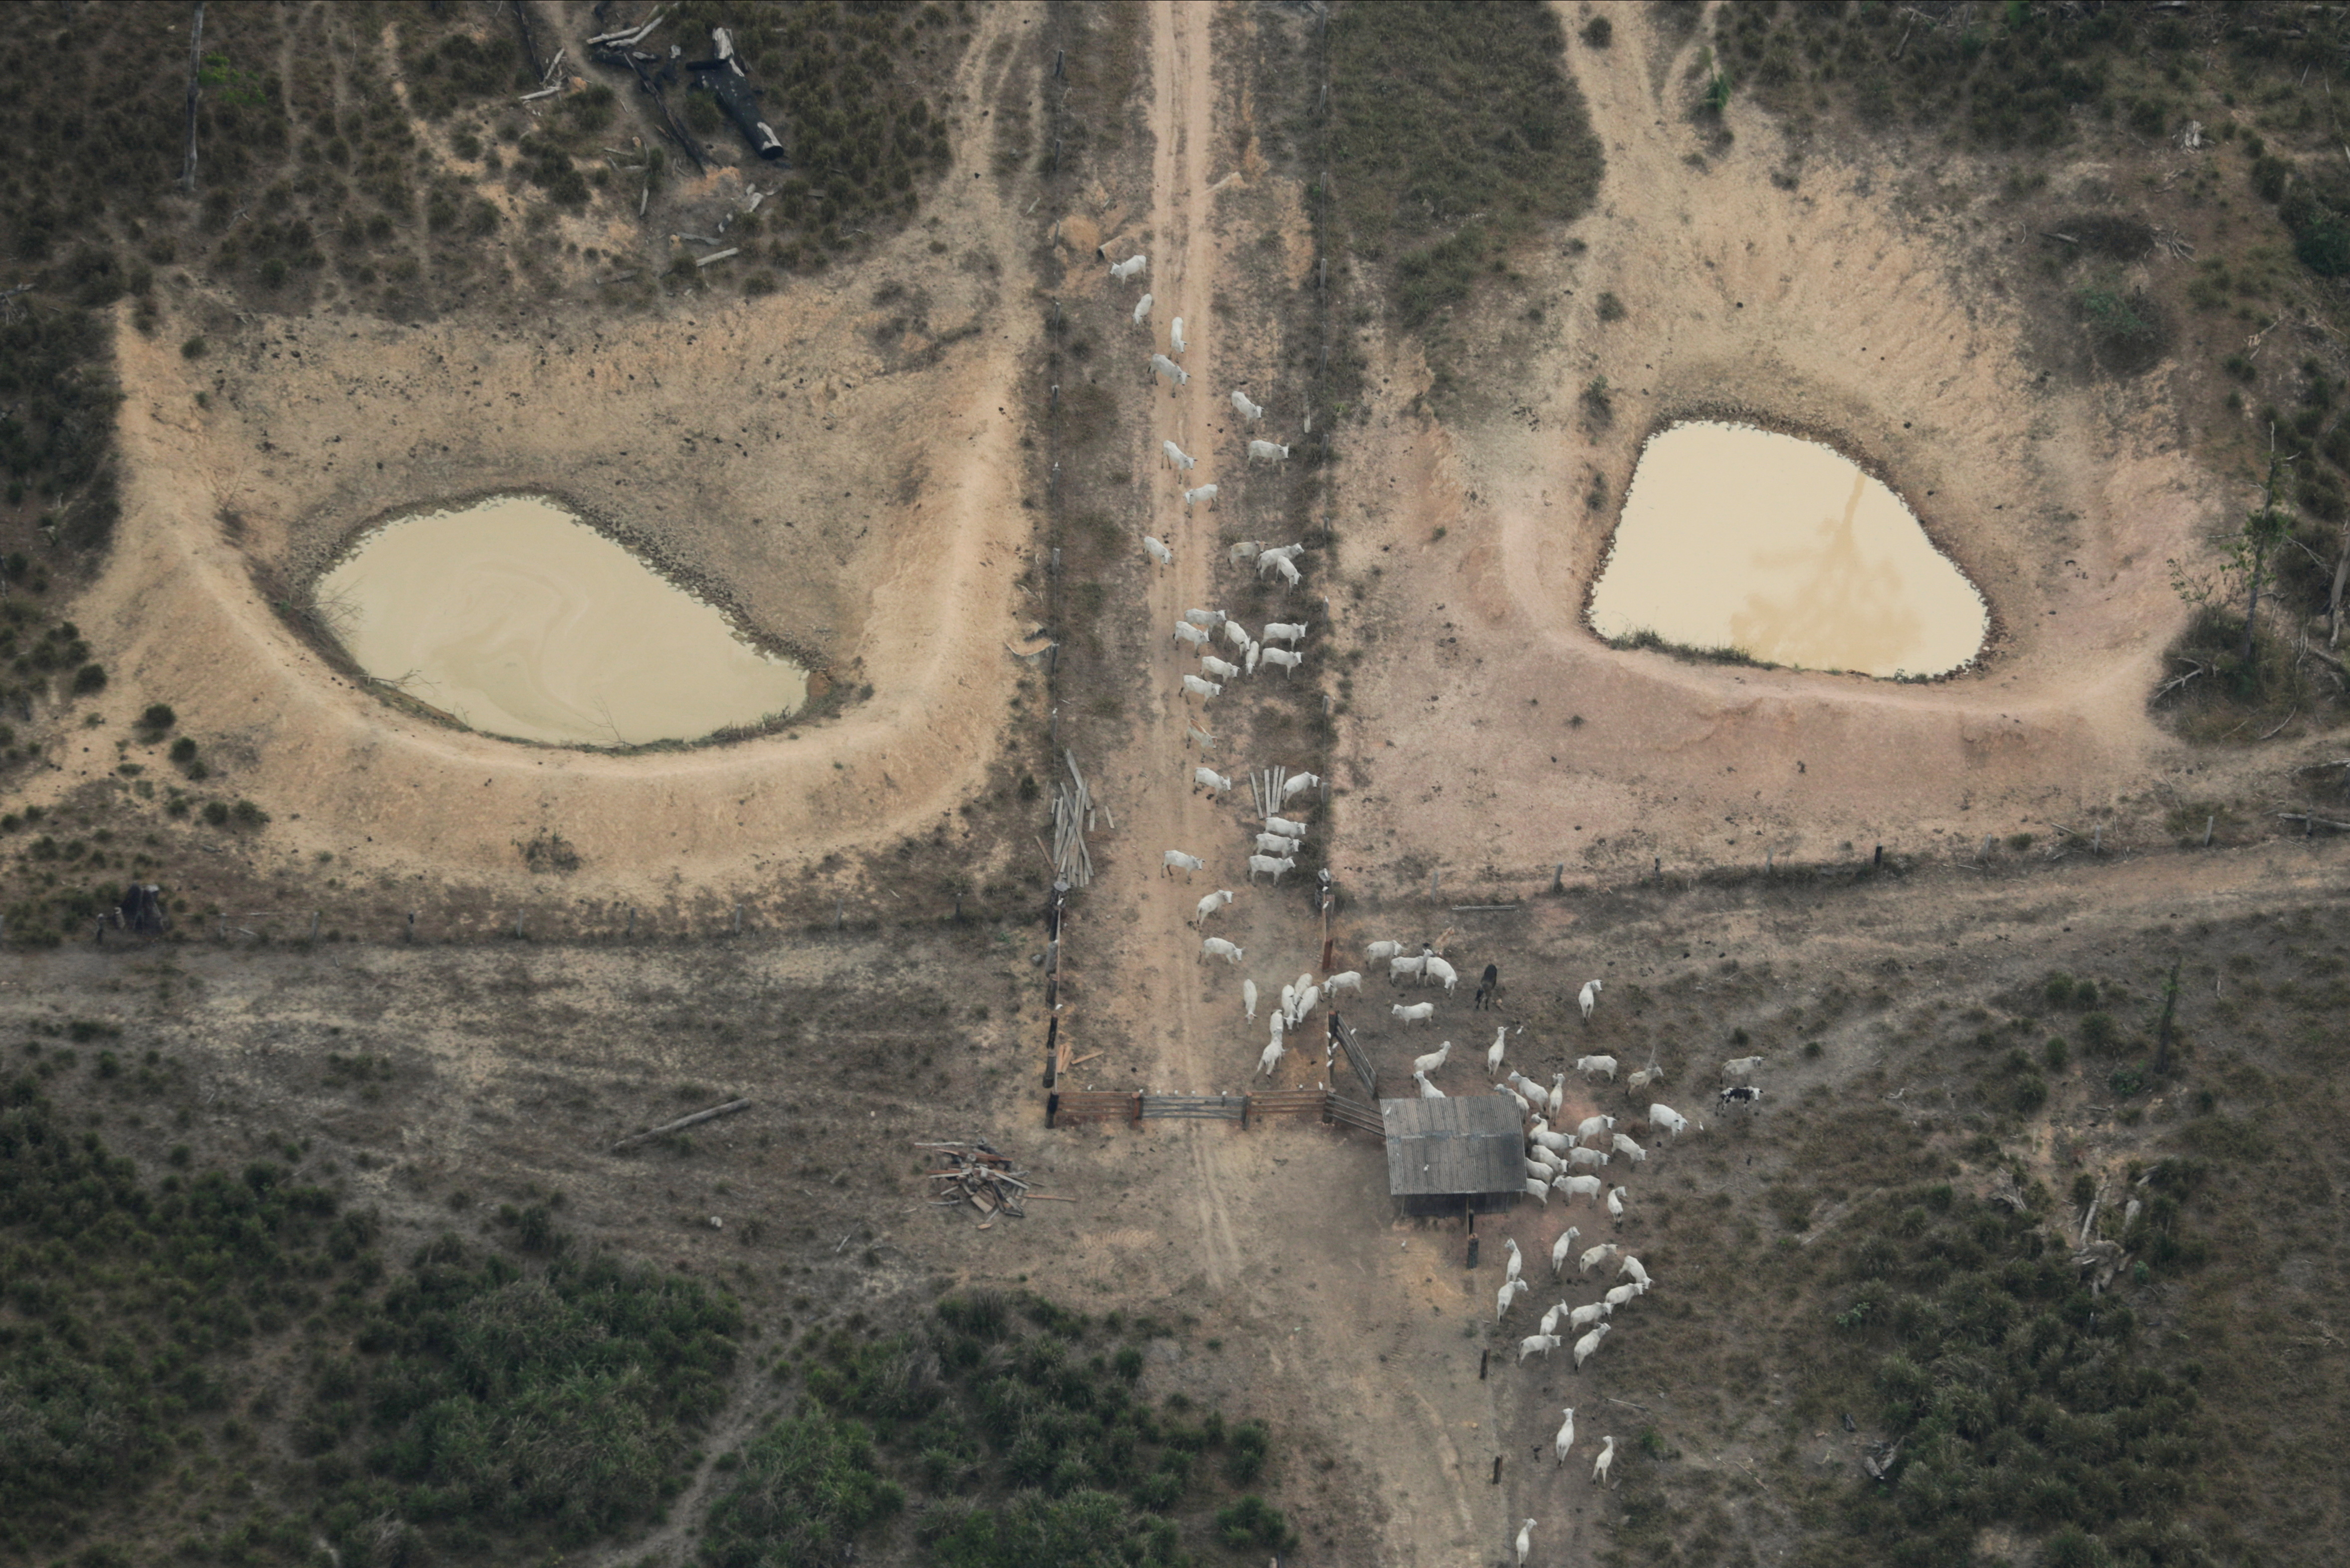 An aerial view shows cattle on a deforested plot of the Amazon near Porto Velho, Rondonia State, Brazil August 14, 2020. REUTERS/Ueslei Marcelino